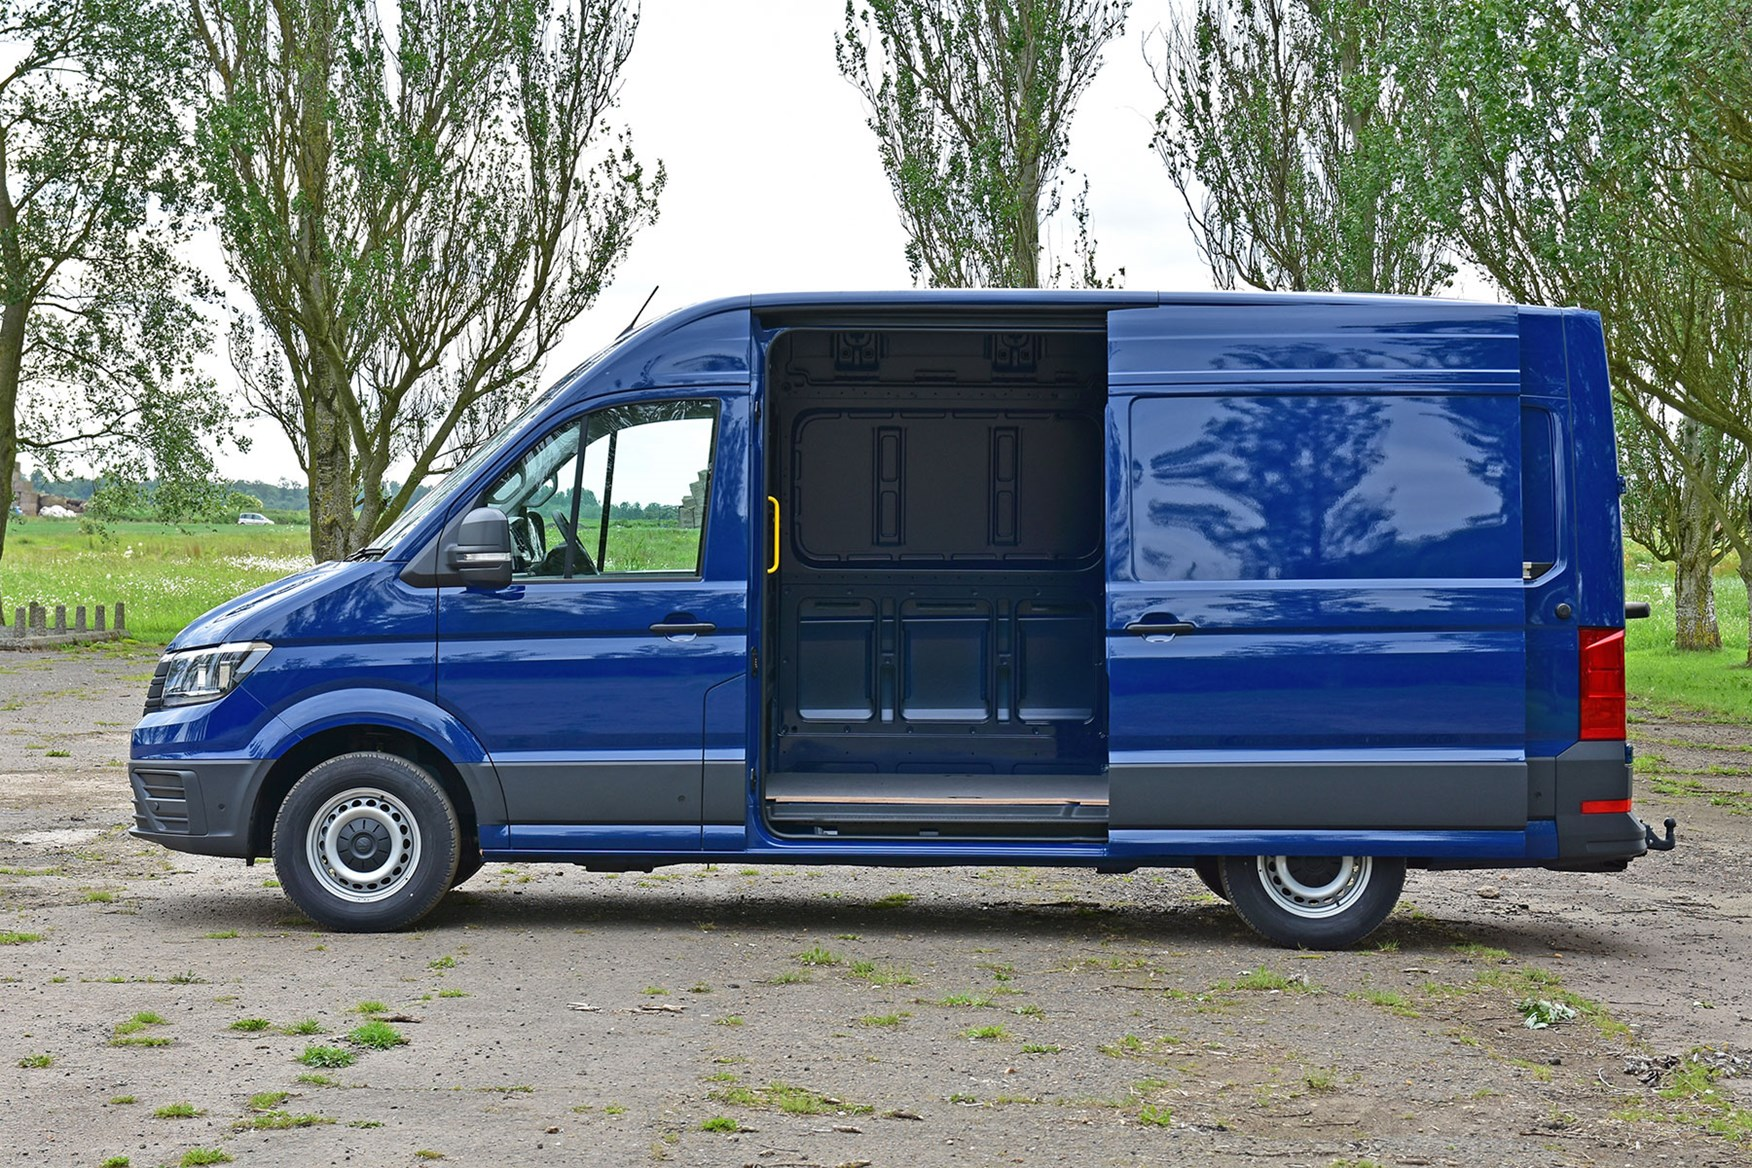 VW Crafter dimensions - side view with door open